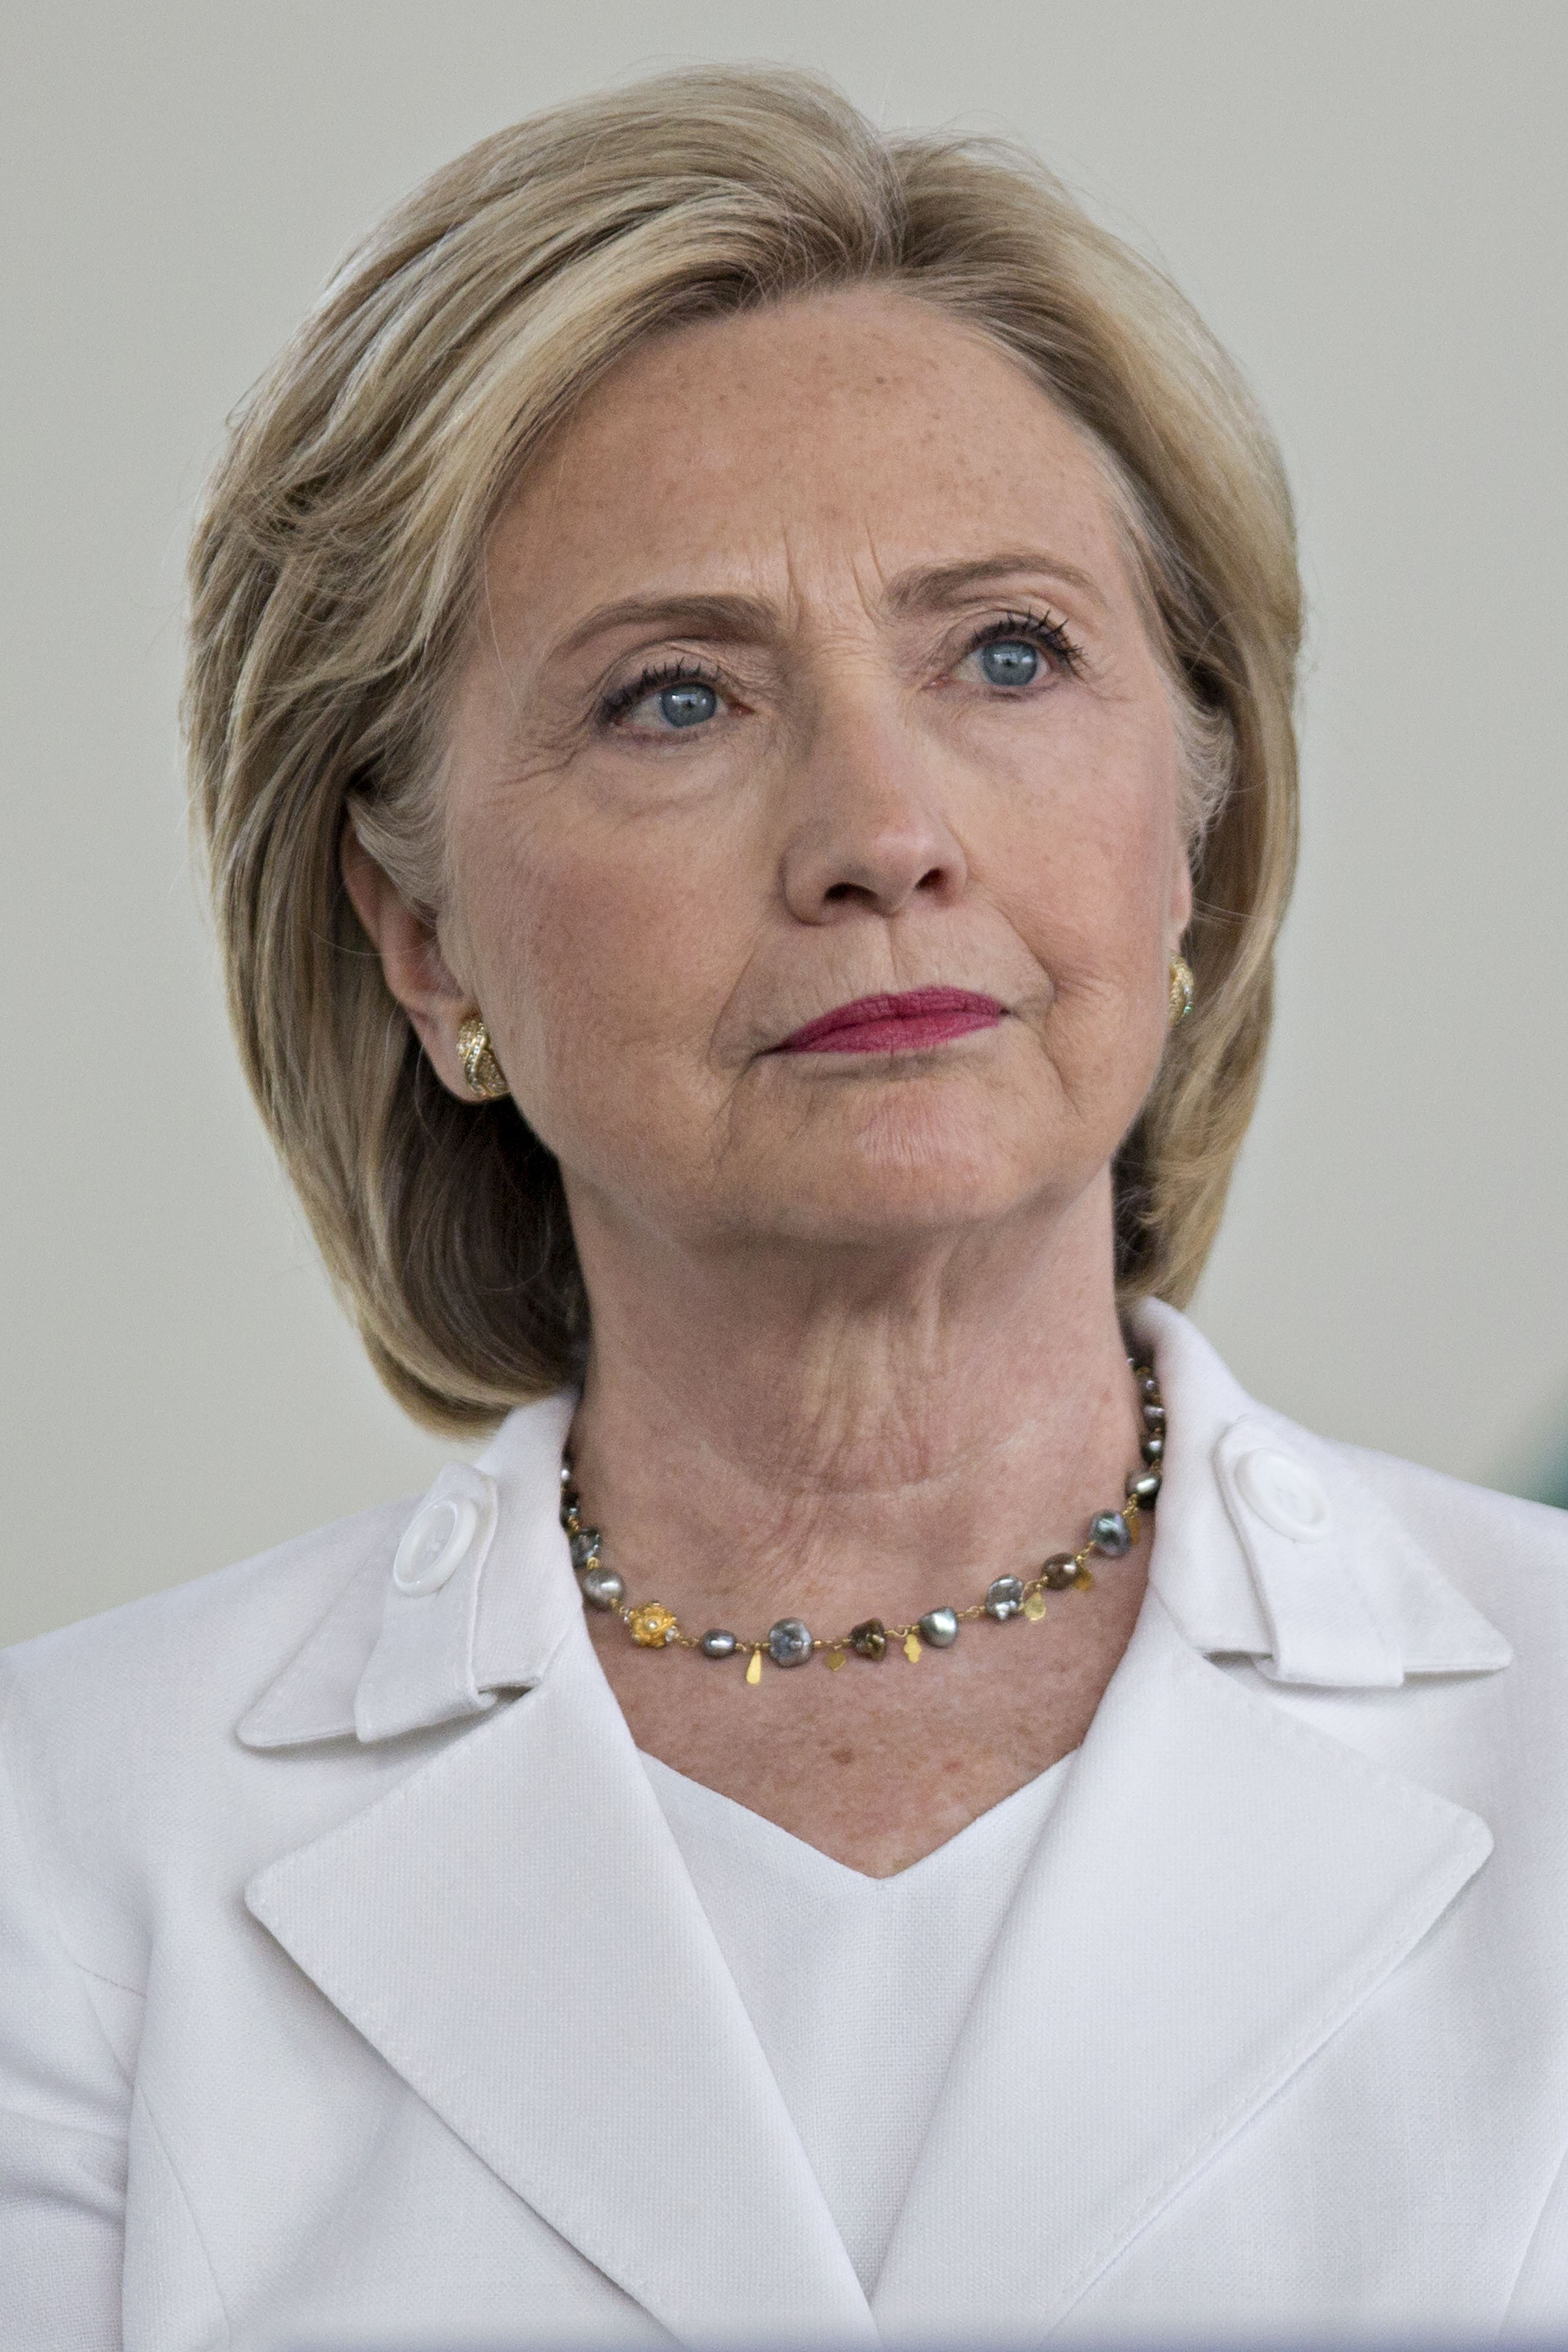 Hillary Clinton, former U.S. secretary of state and 2016 Democratic presidential candidate, listens during her introduction at an event in Ankeny, Iowa, on Aug. 26, 2015.